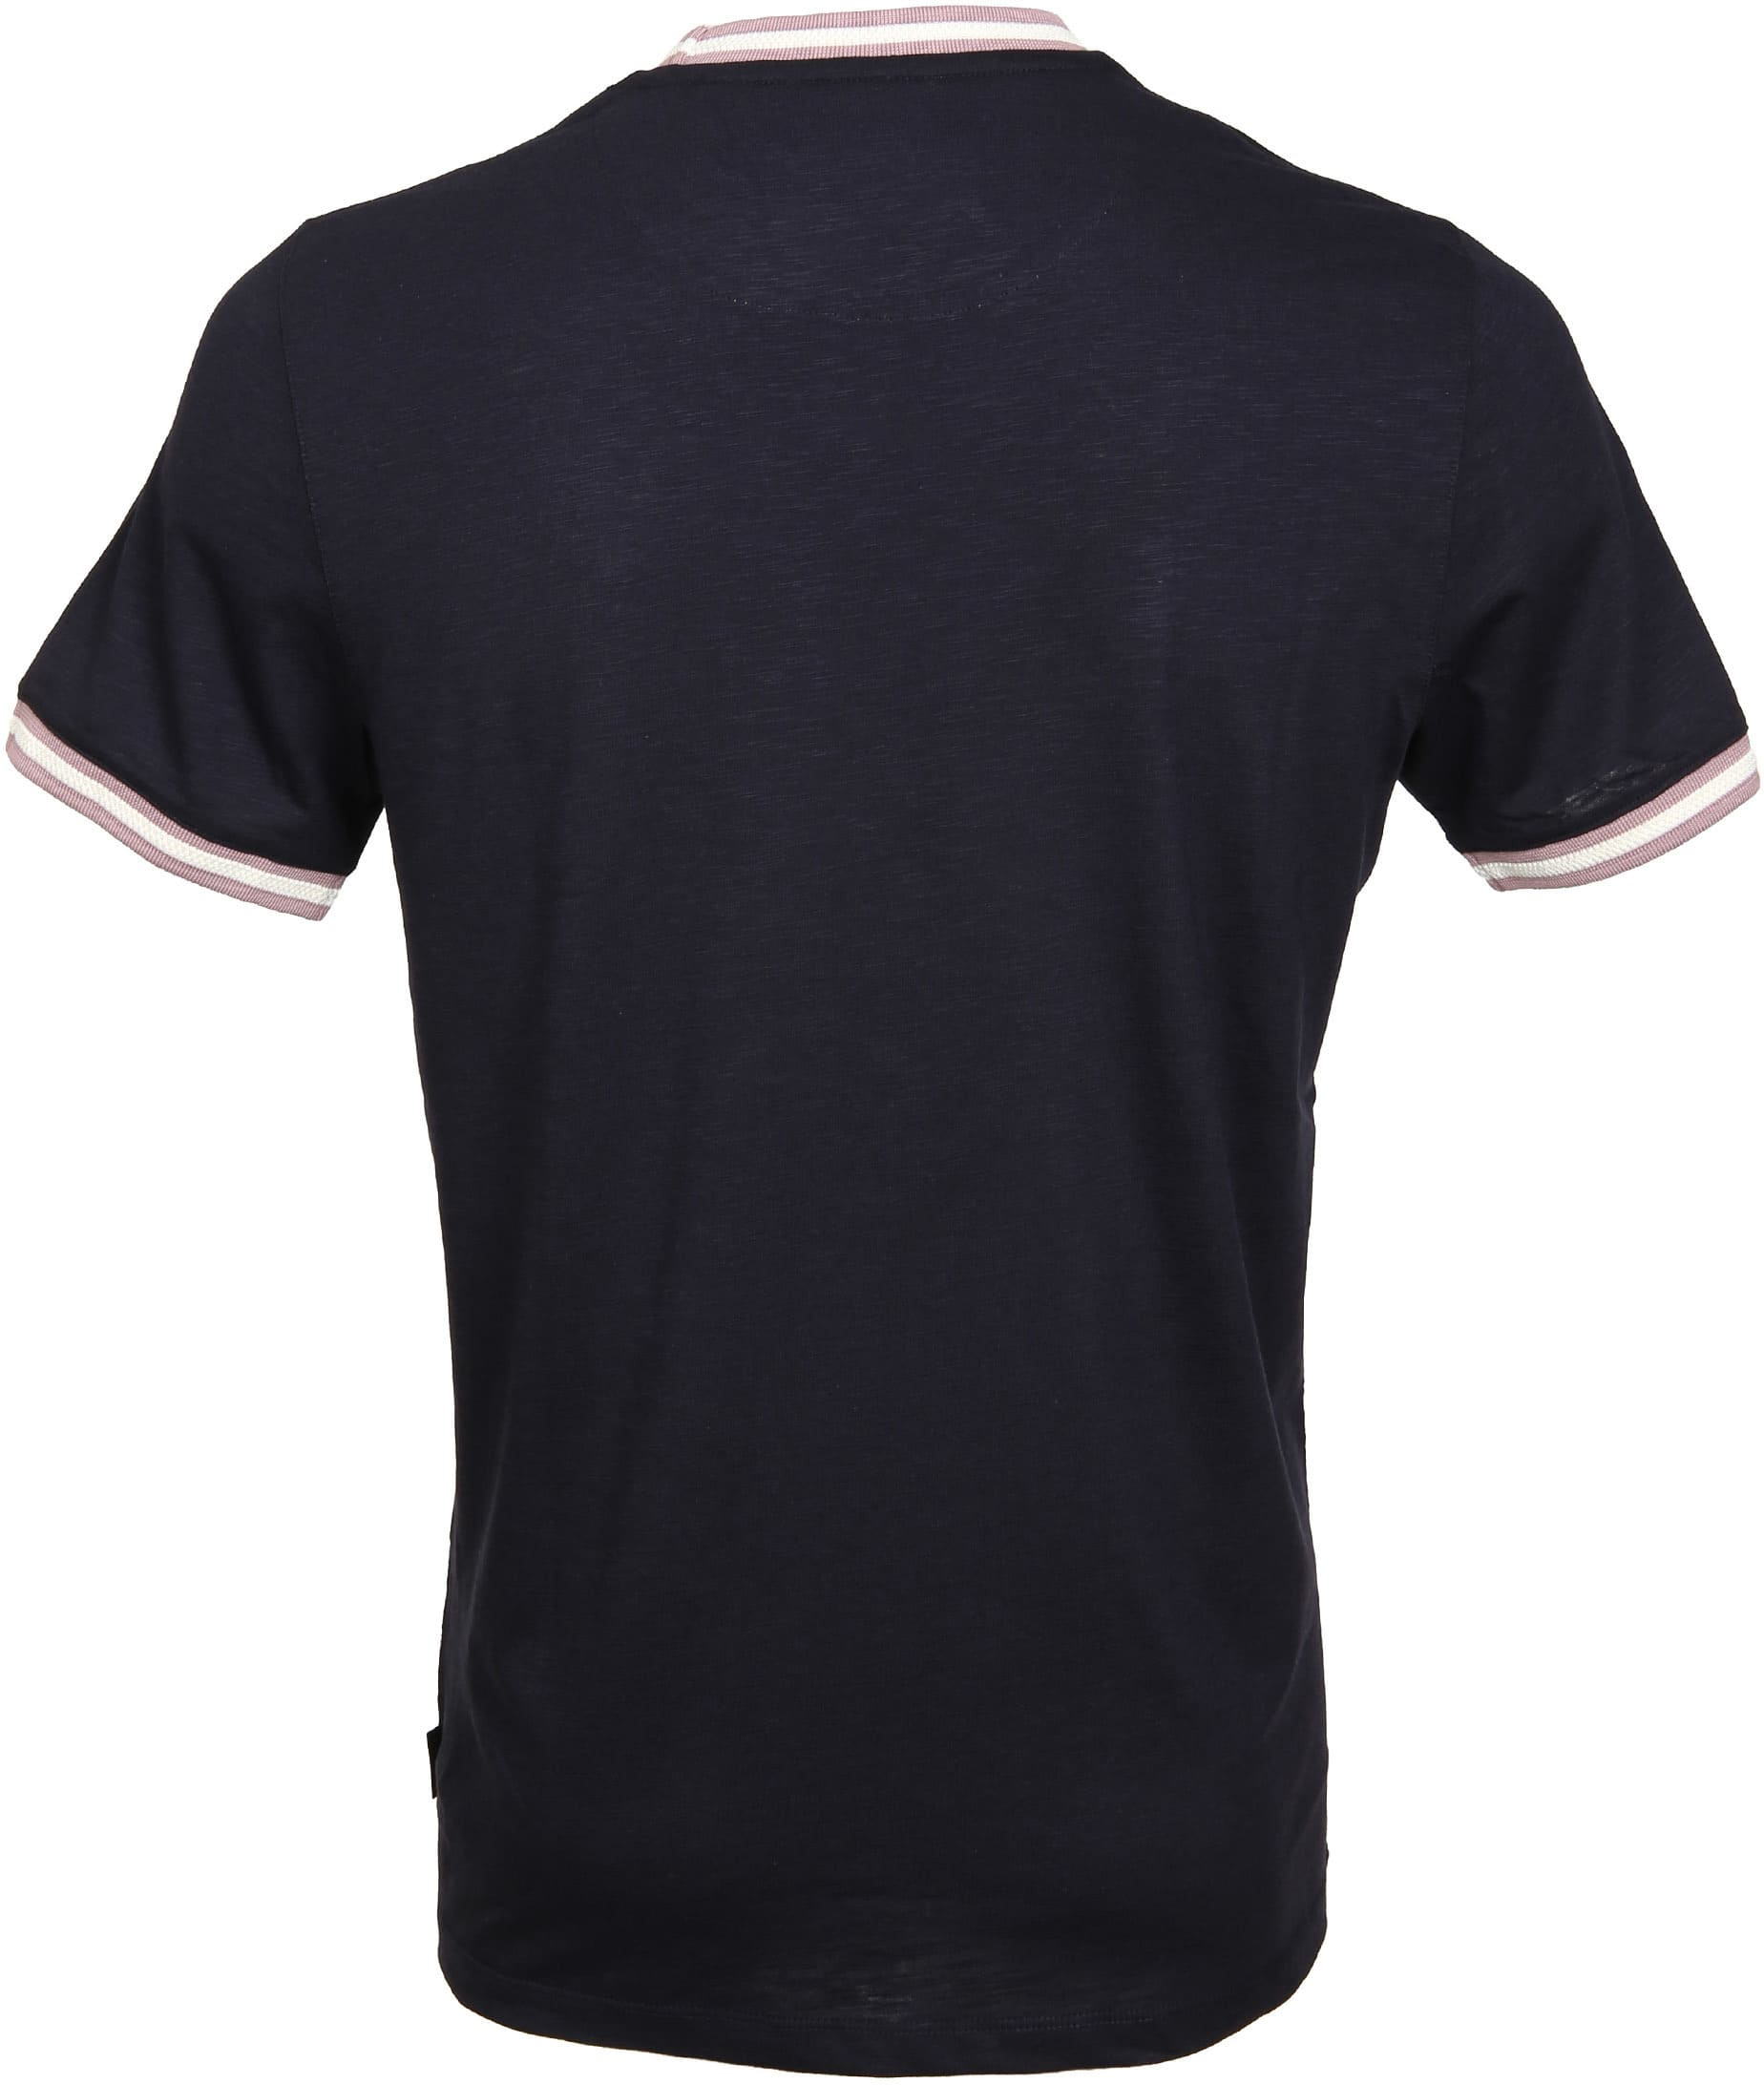 Ted Baker T-Shirt Navy foto 2